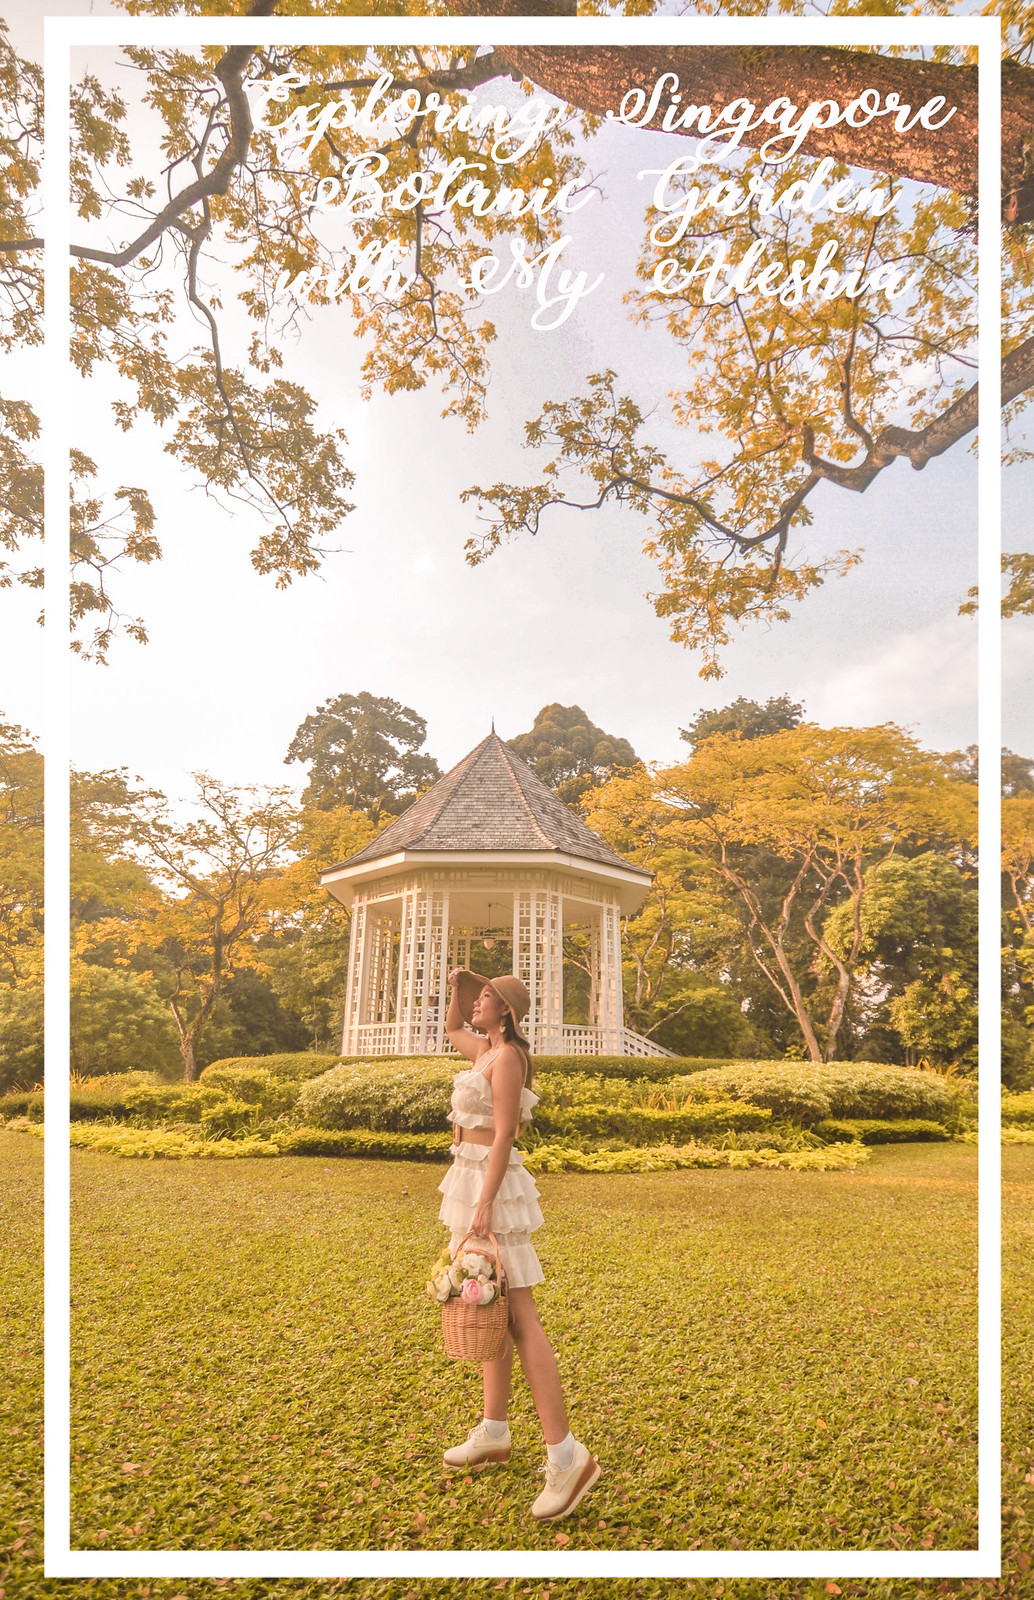 [Fashion] Exploring Singapore Botanic Gardens with My Aleshia Dresses